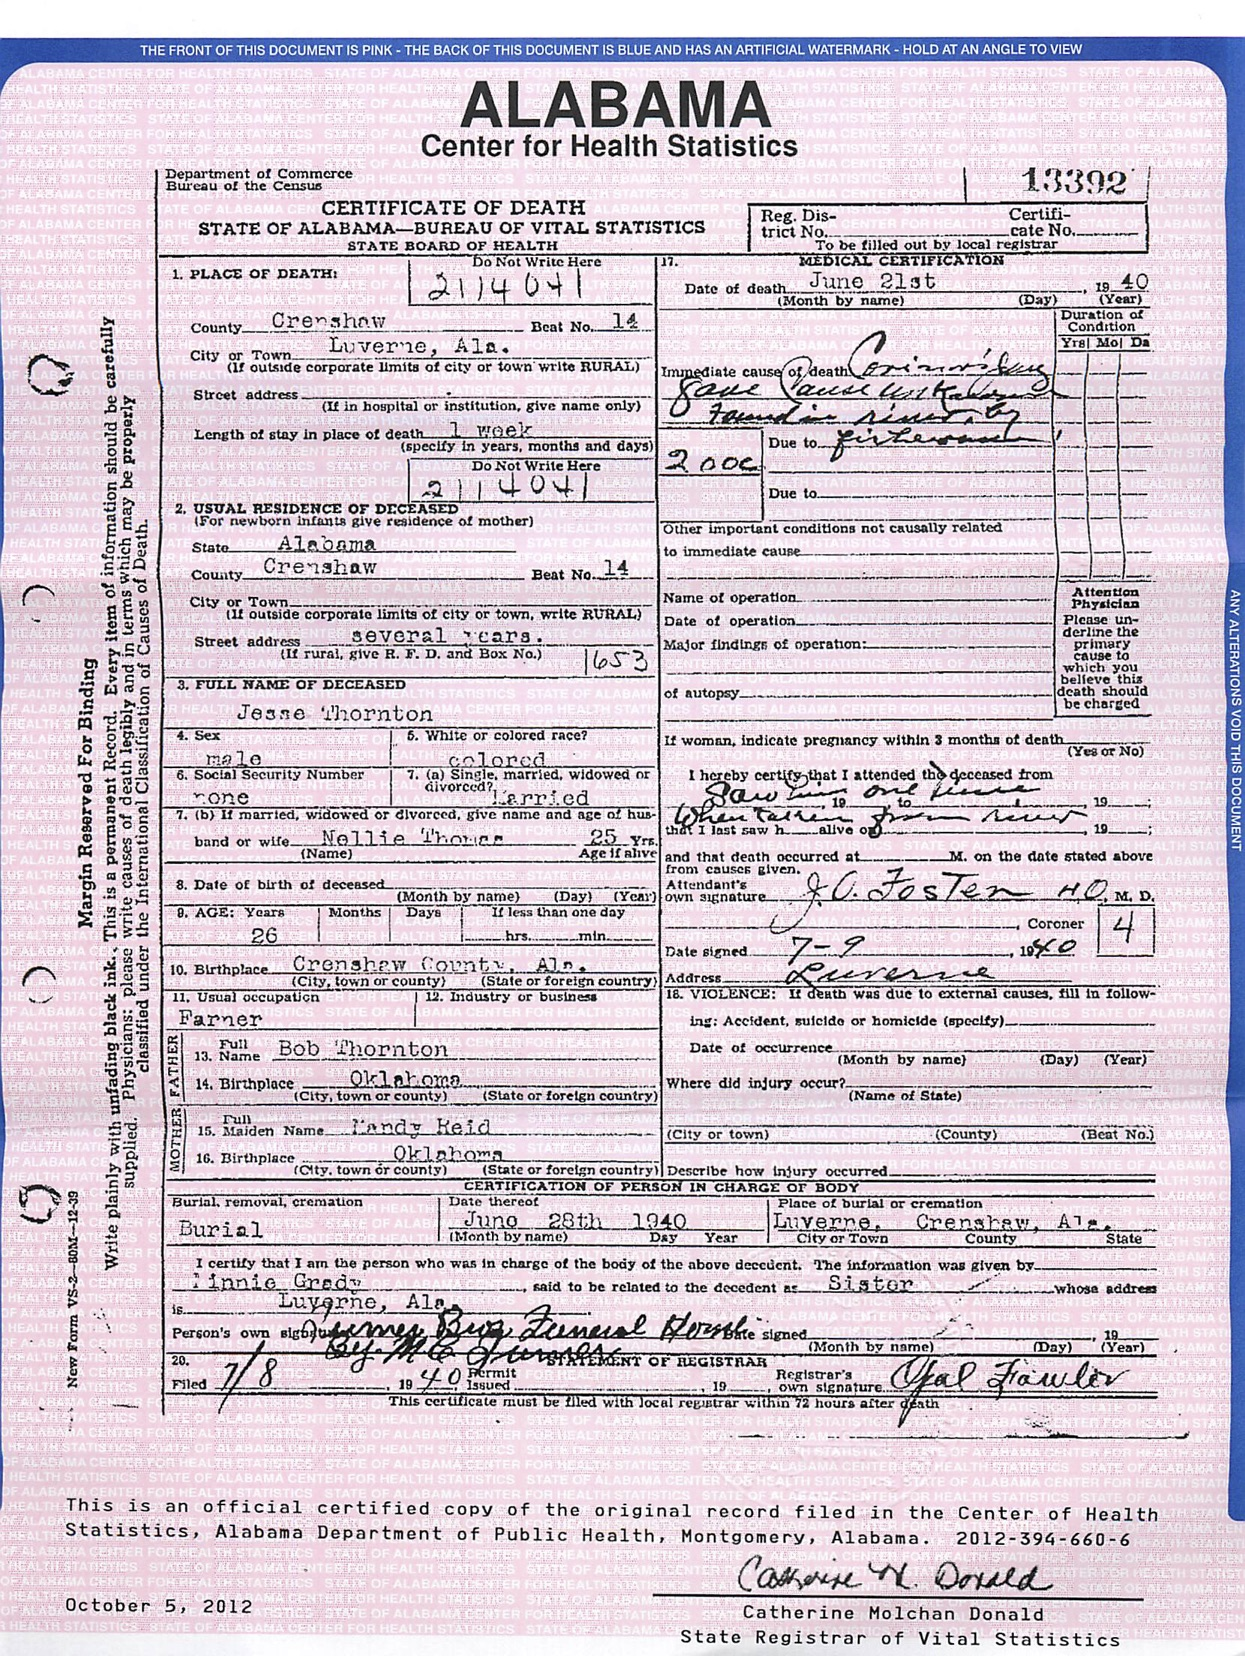 This is the death certificate for Jesse Thornton.